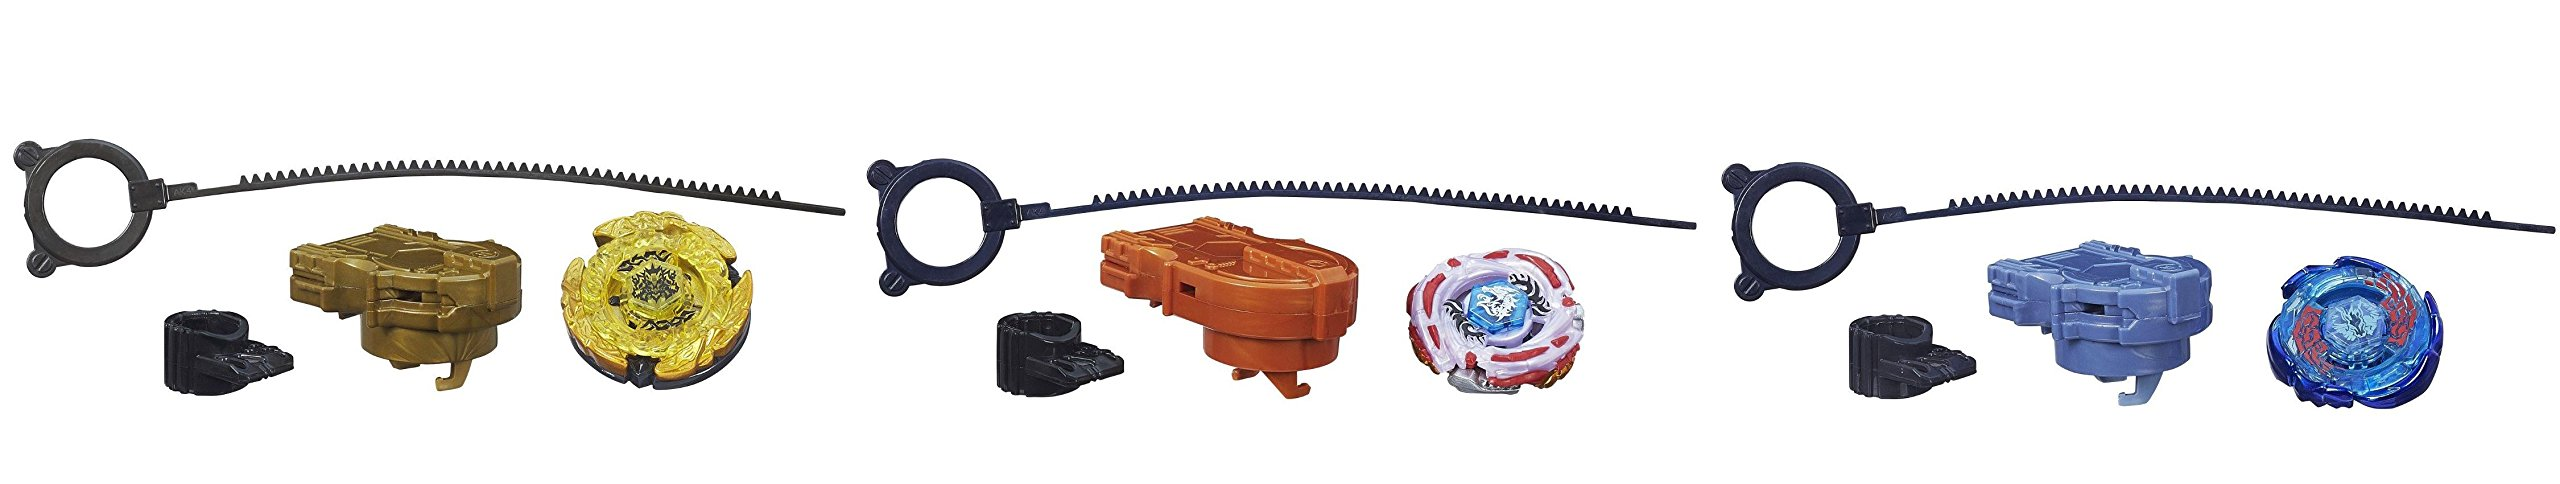 Beyblade Legends BB-99 Hades Kerbecs BD145DS Top, BB-70 Galaxy Pegasus W105R2F Top & BB-88 Meteo L-Drago LW105LF Top Bundle